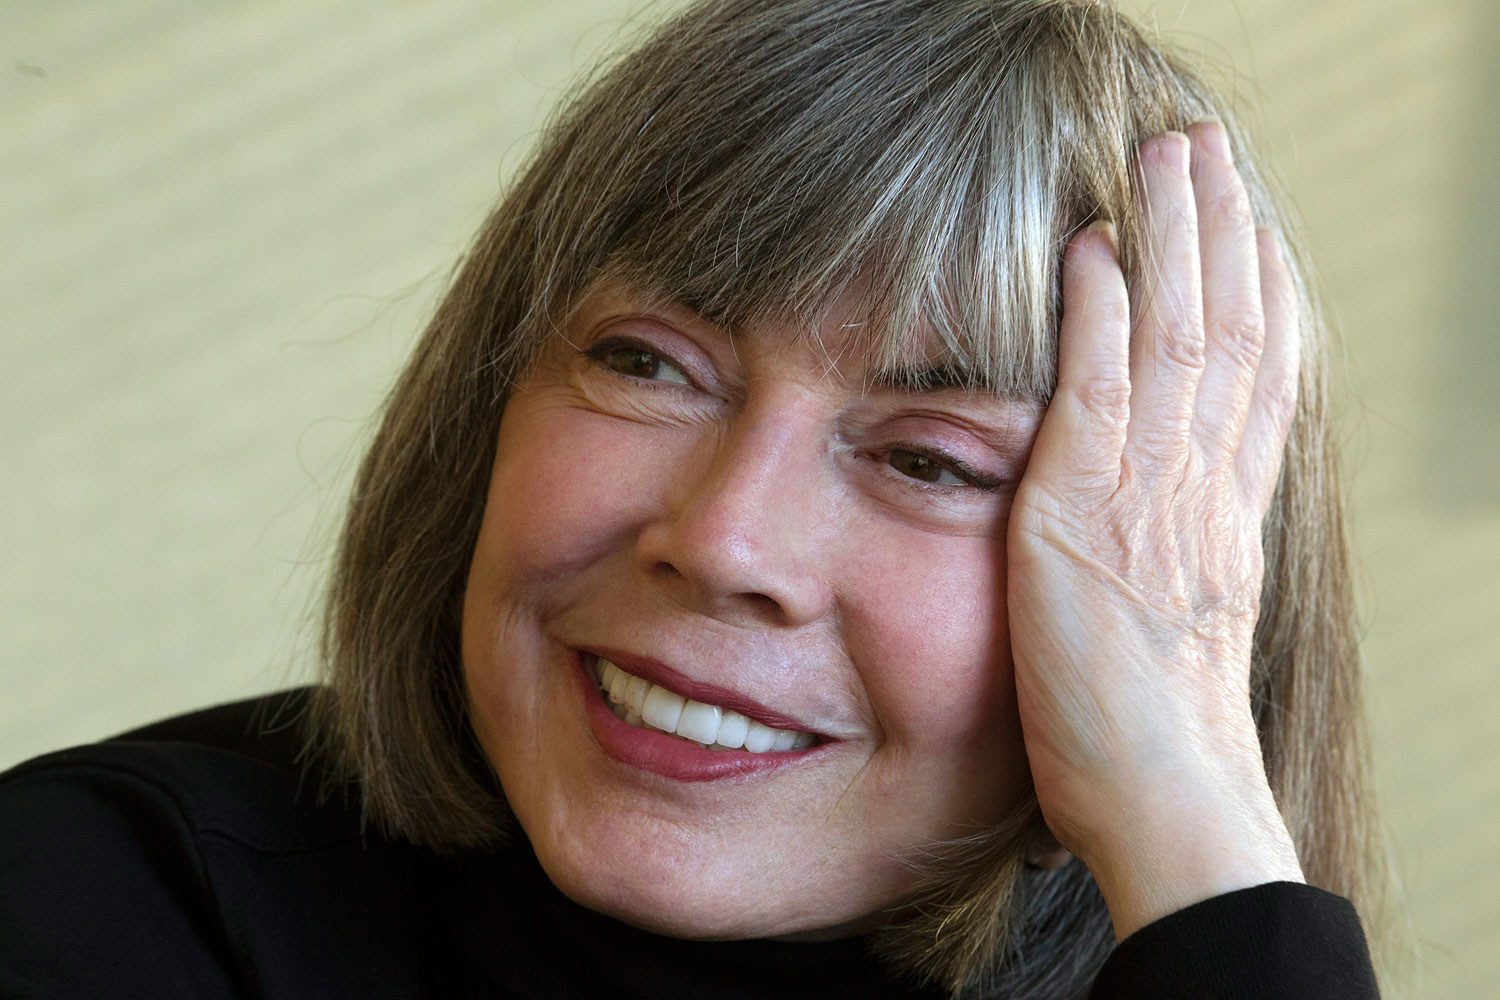 Author Anne Rice is shown during an interview, Feb. 13, 2012.